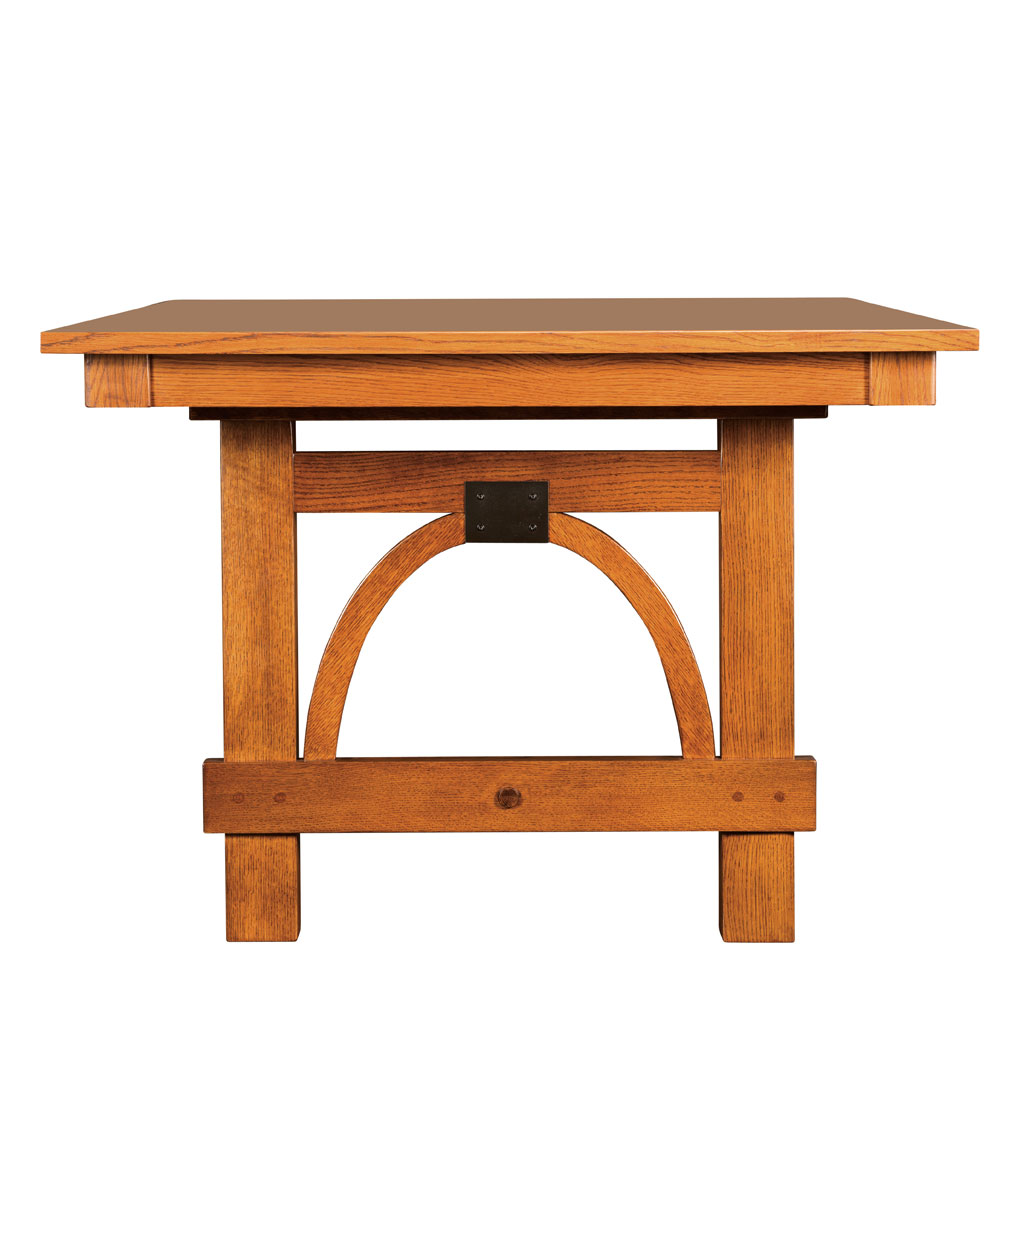 Ellis Amish Trestle Table [Side Detail]